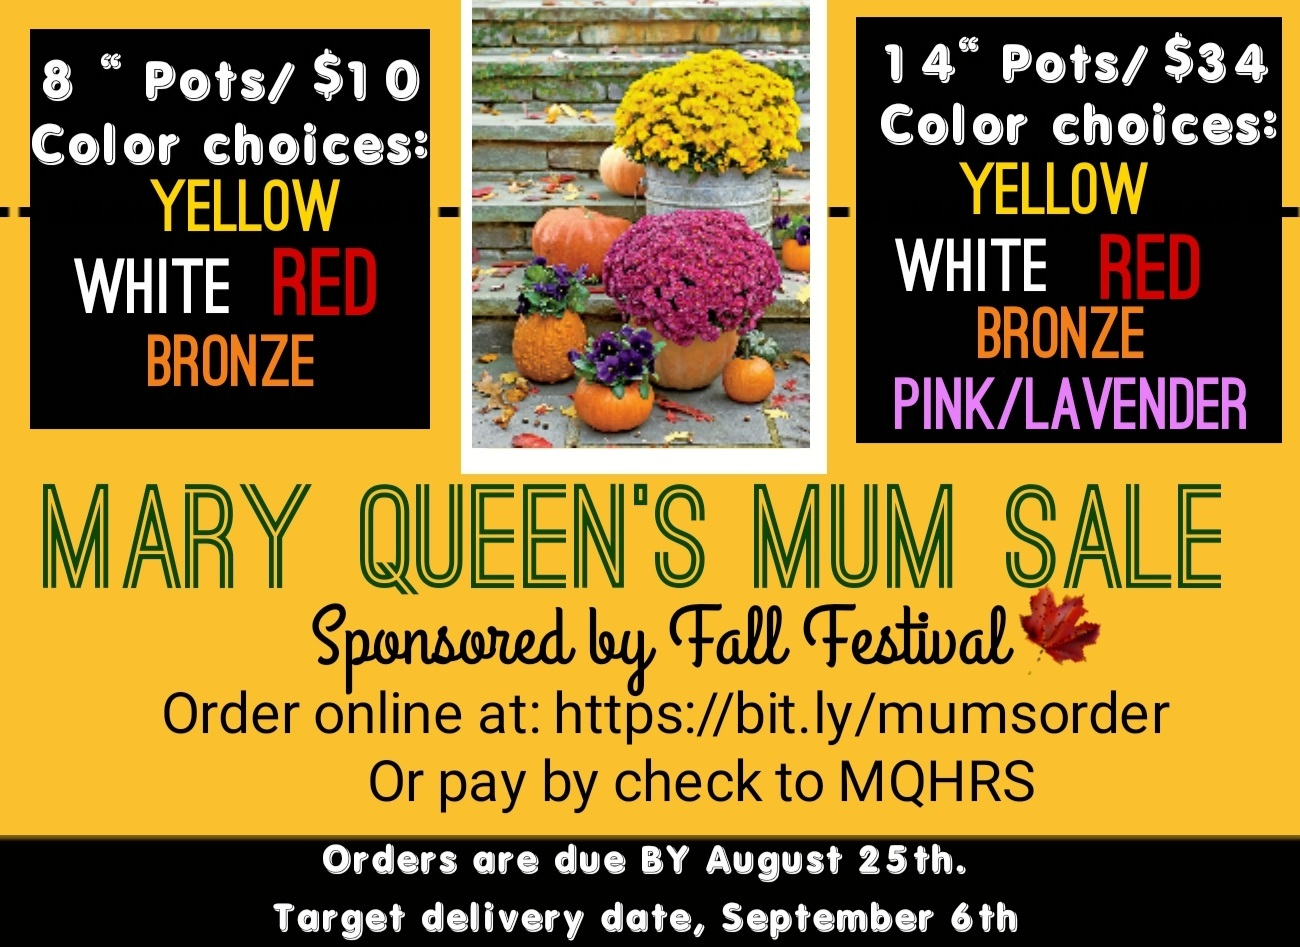 Mary Queen's Mum Sale  Orders due by 8/25